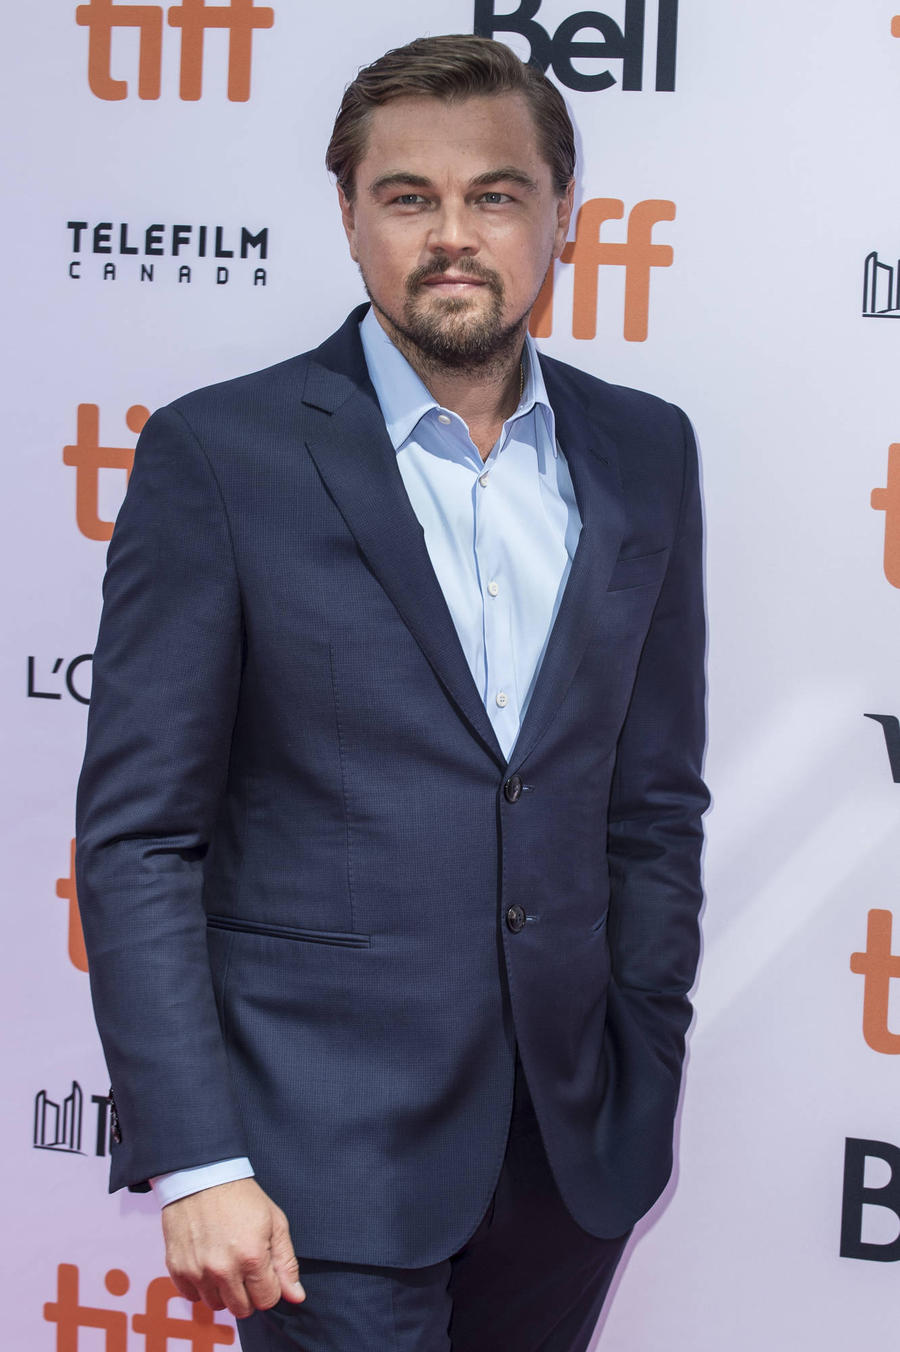 Leonardo Dicaprio Warns 'Oceans Being Pushed To The Brink'